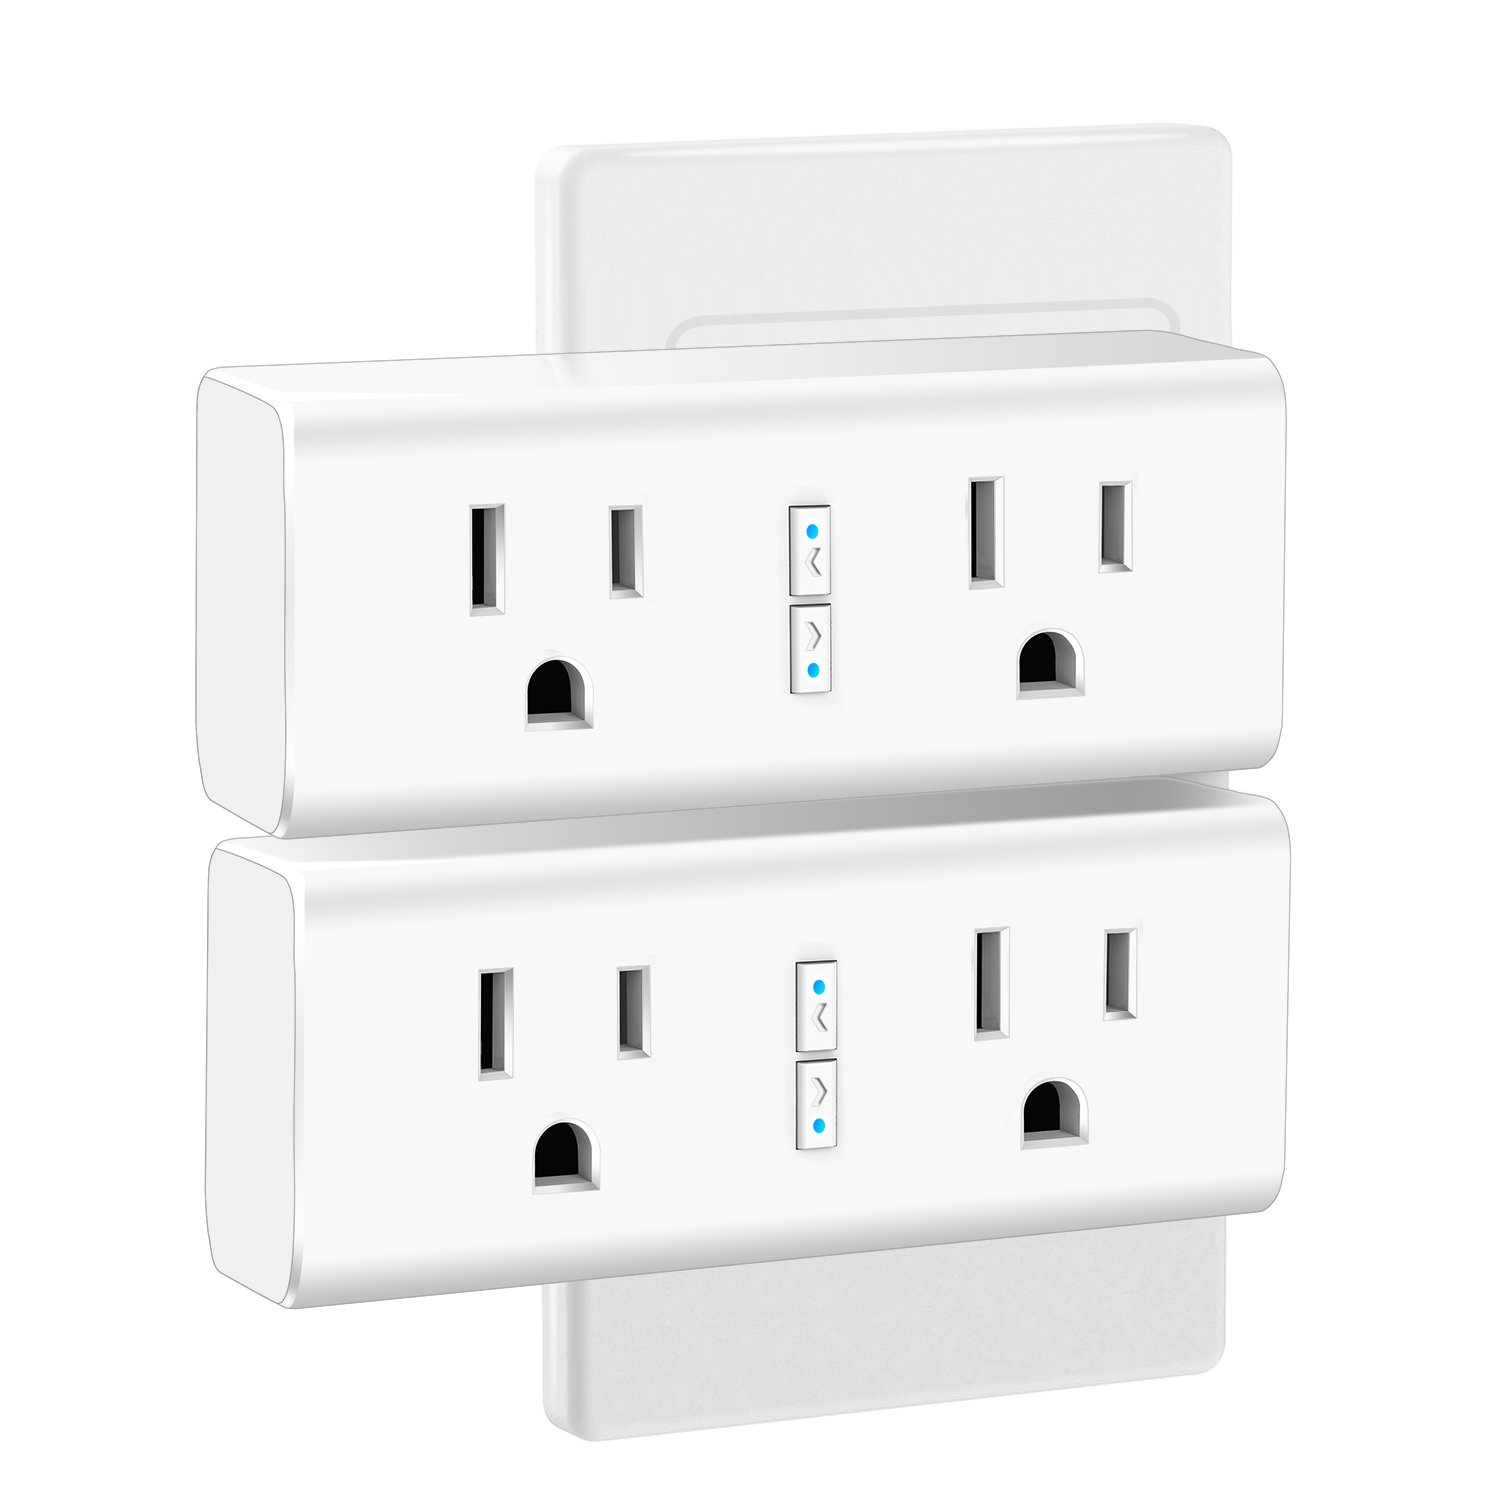 Anbes Wi-Fi Smart Plug Mini Outlet with Energy Monitoring, Alexa Plug Smart Socket Compatible with Alexa and Google Home, Timing Function, Dual Outlets Work Individually or in Groups (2 Pack)